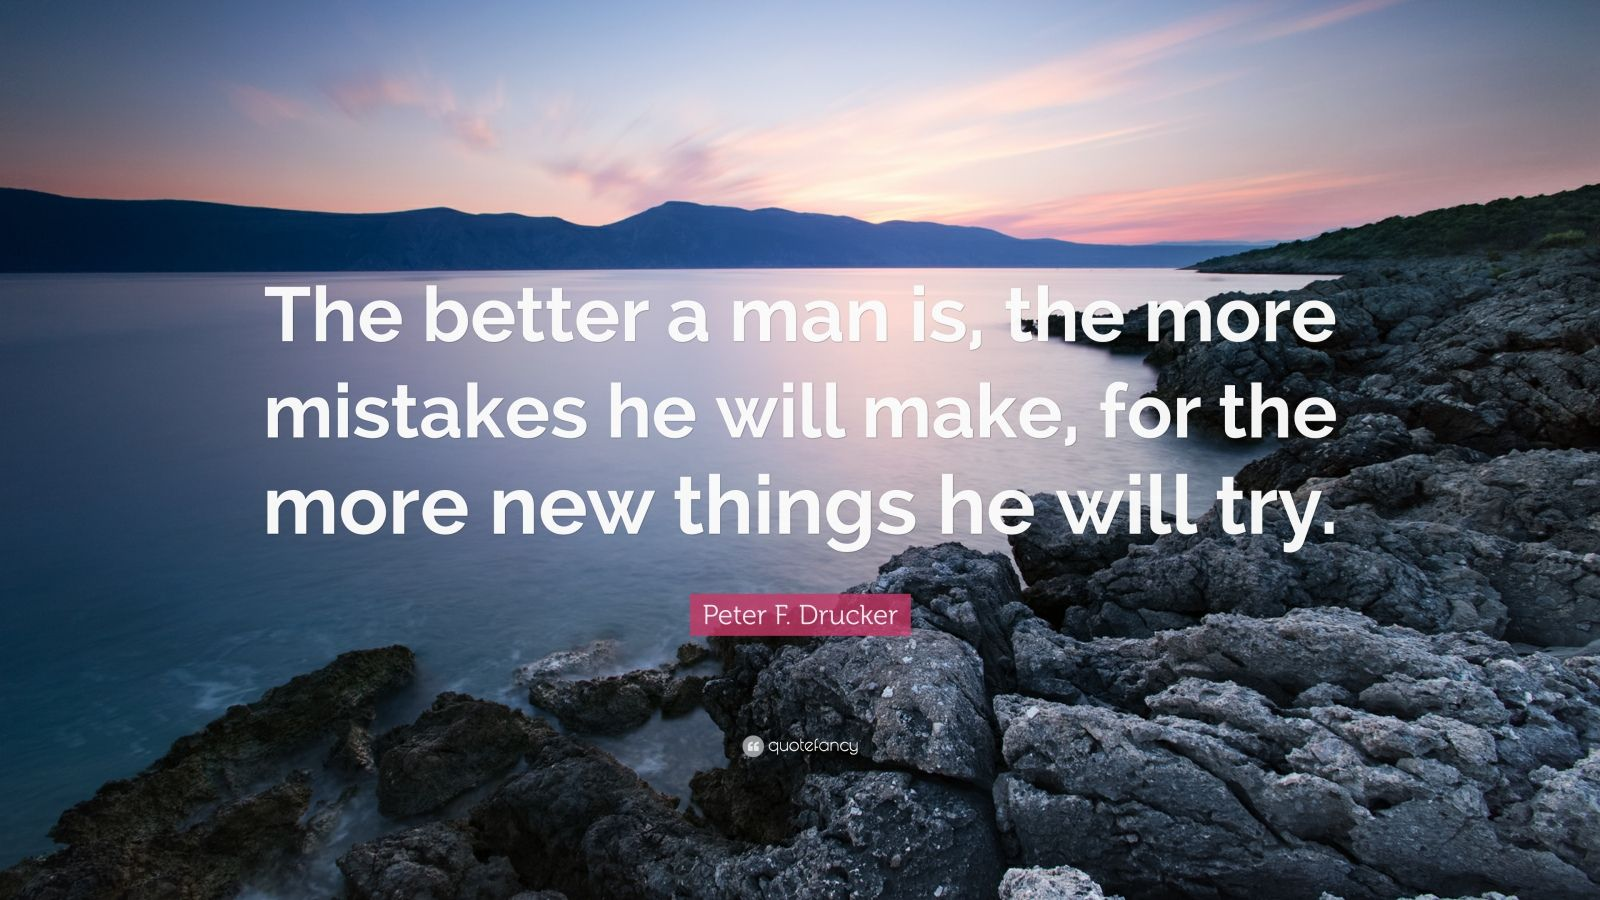 """Peter F. Drucker Quote: """"The better a man is, the more mistakes he will make, for the more new things he will try."""""""